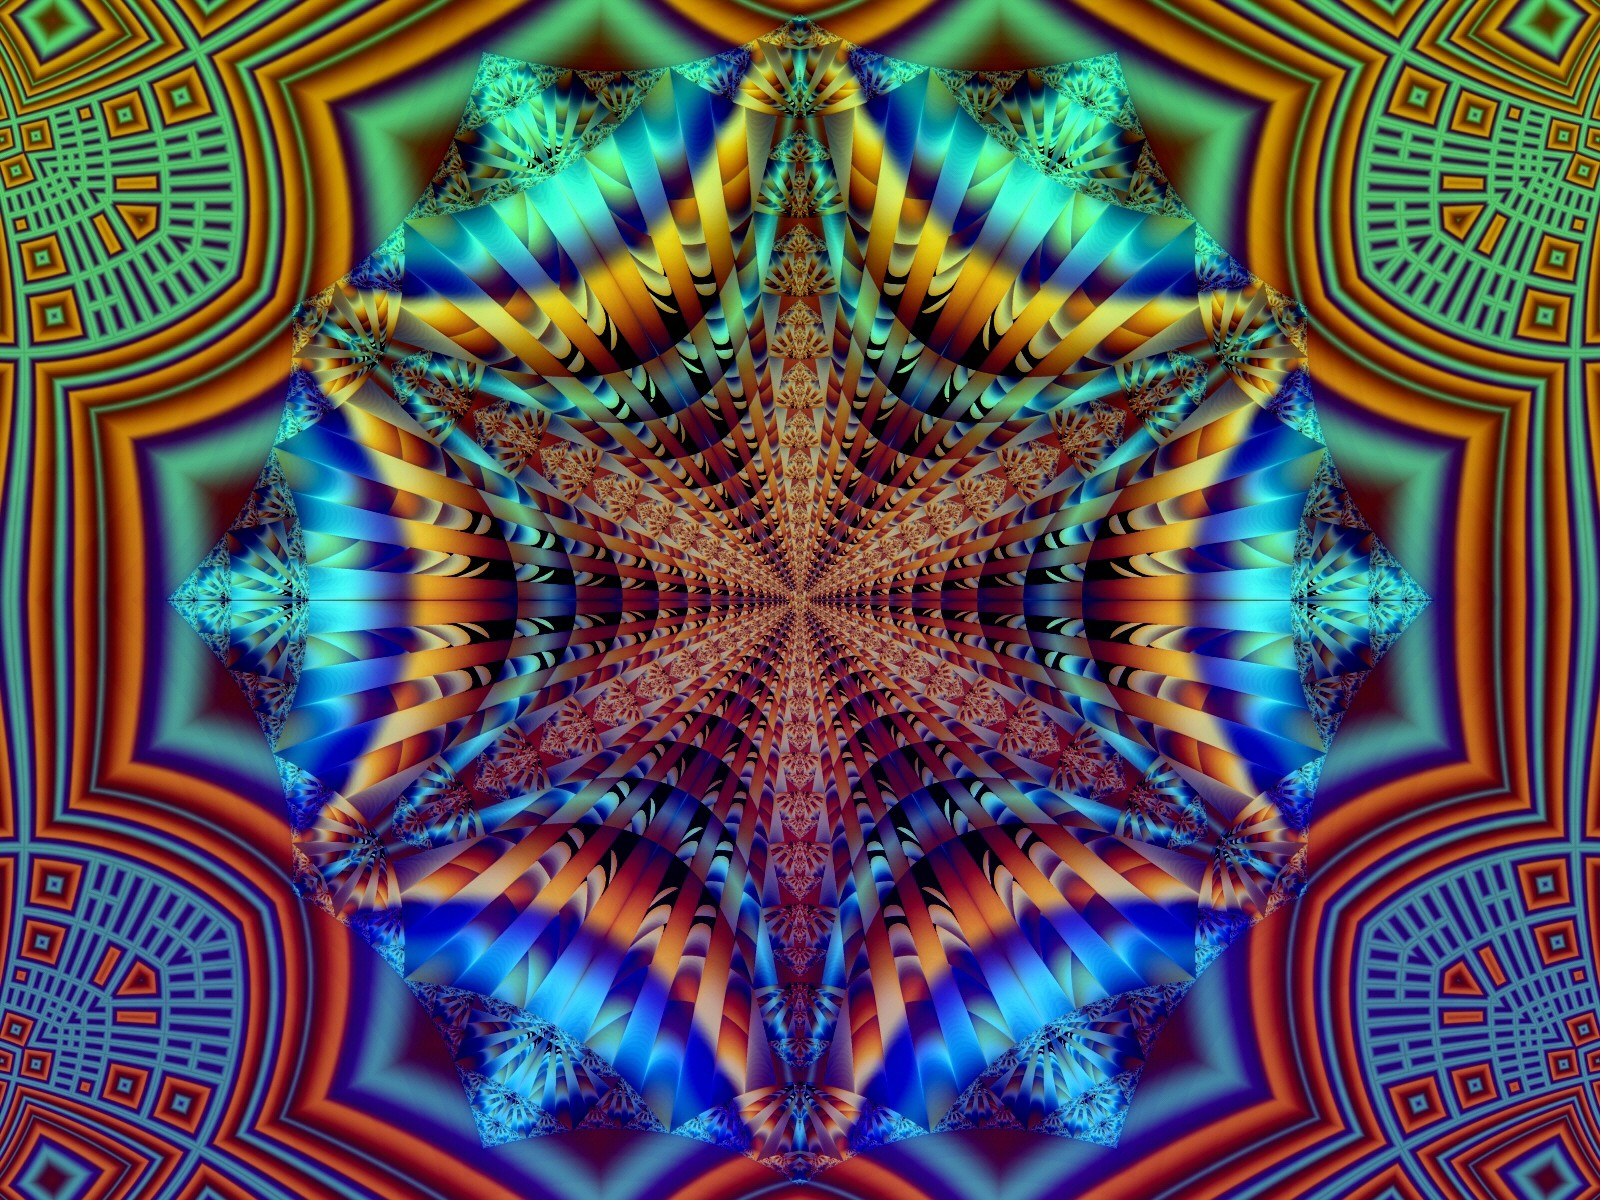 psychedelic wallpaper 46980